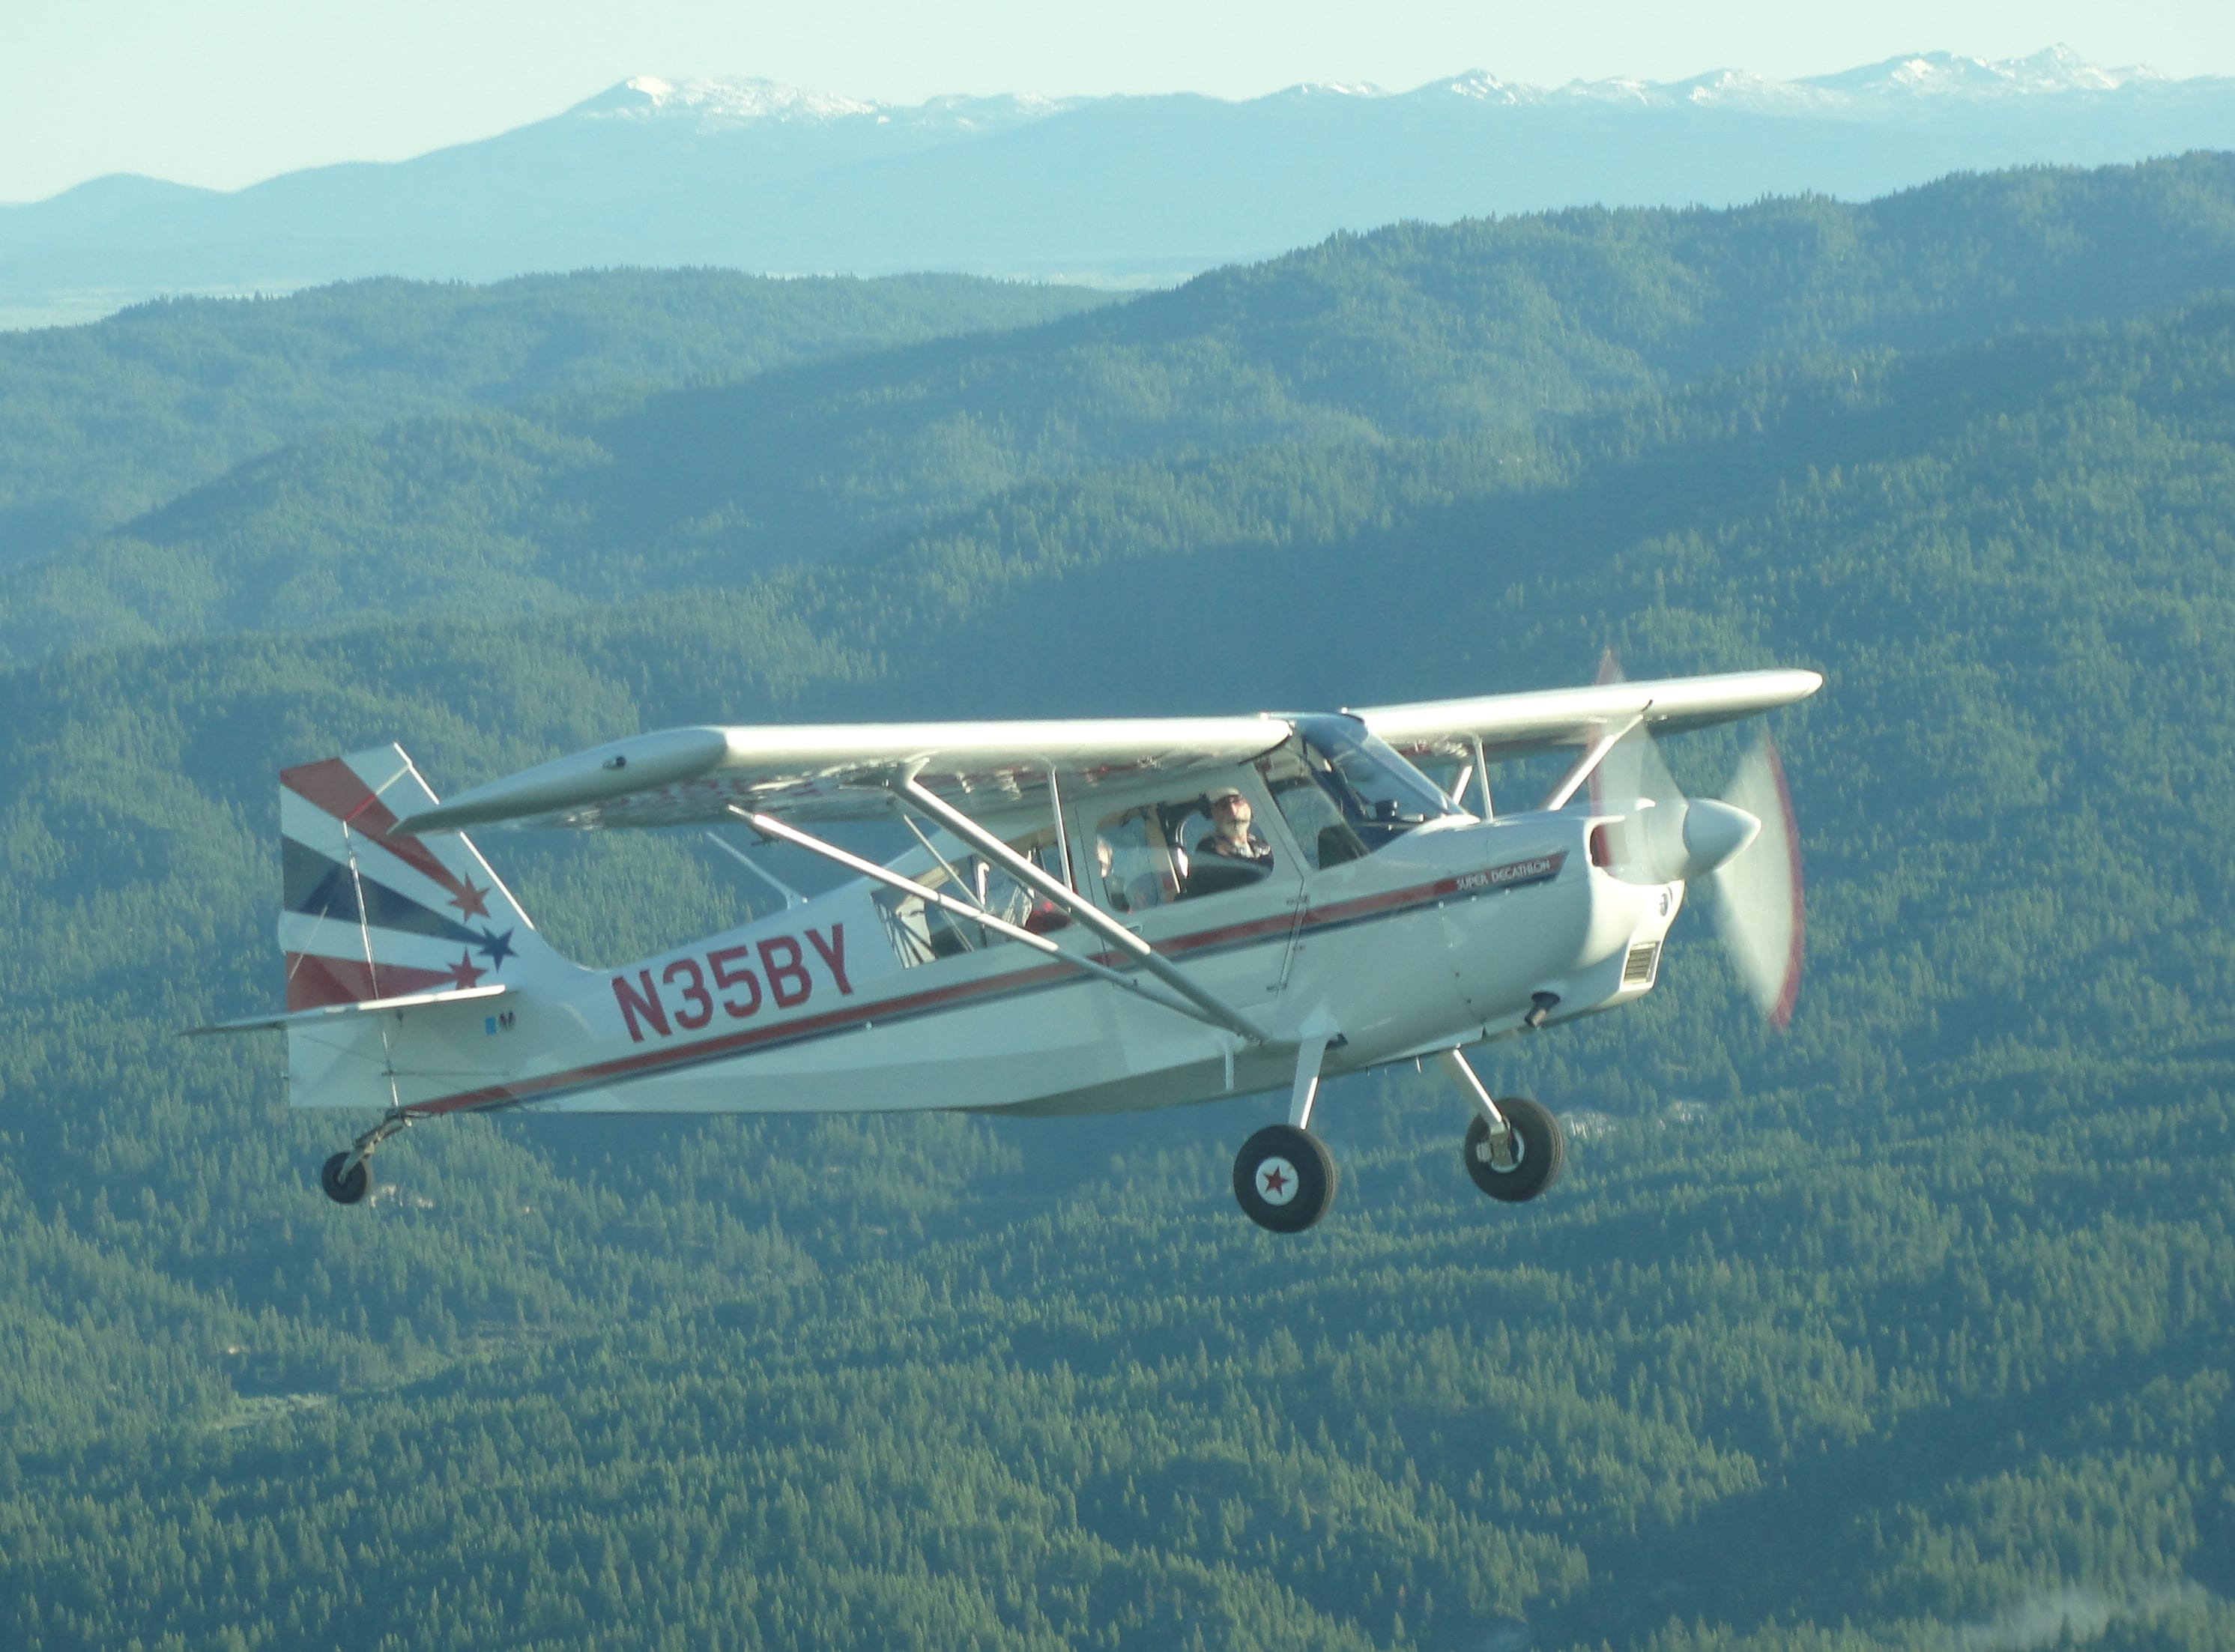 Stowell_N35BY_air-to-air-3